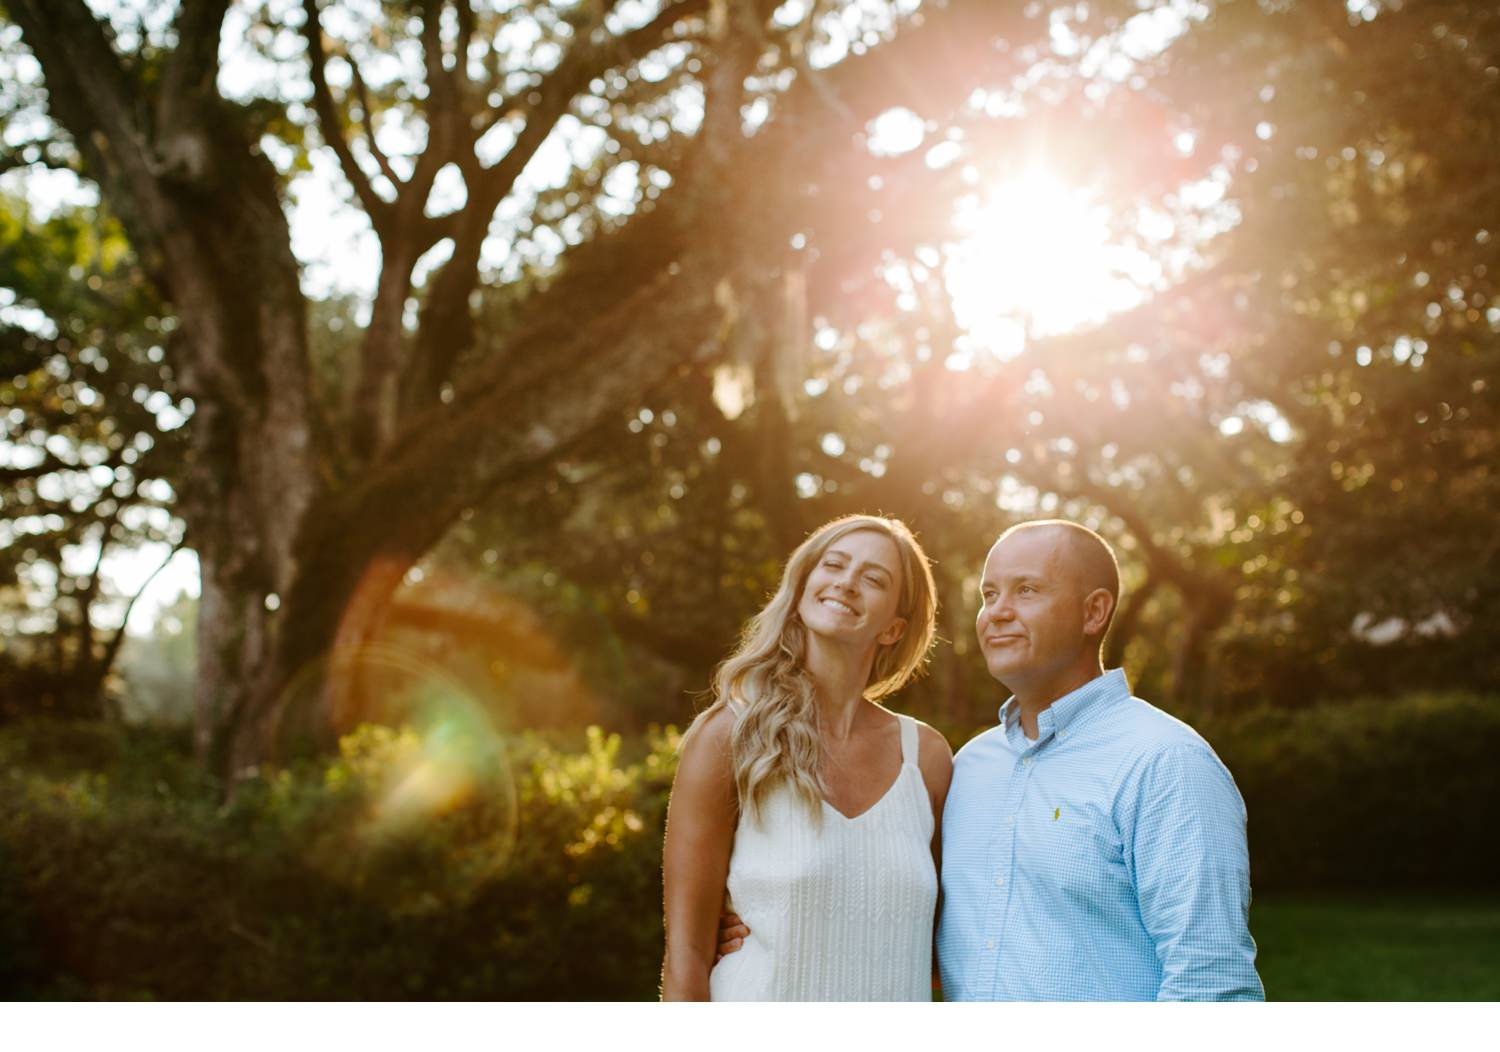 eden-gardens-state-park-engagement-session-stacie-and-jacob-2.jpg